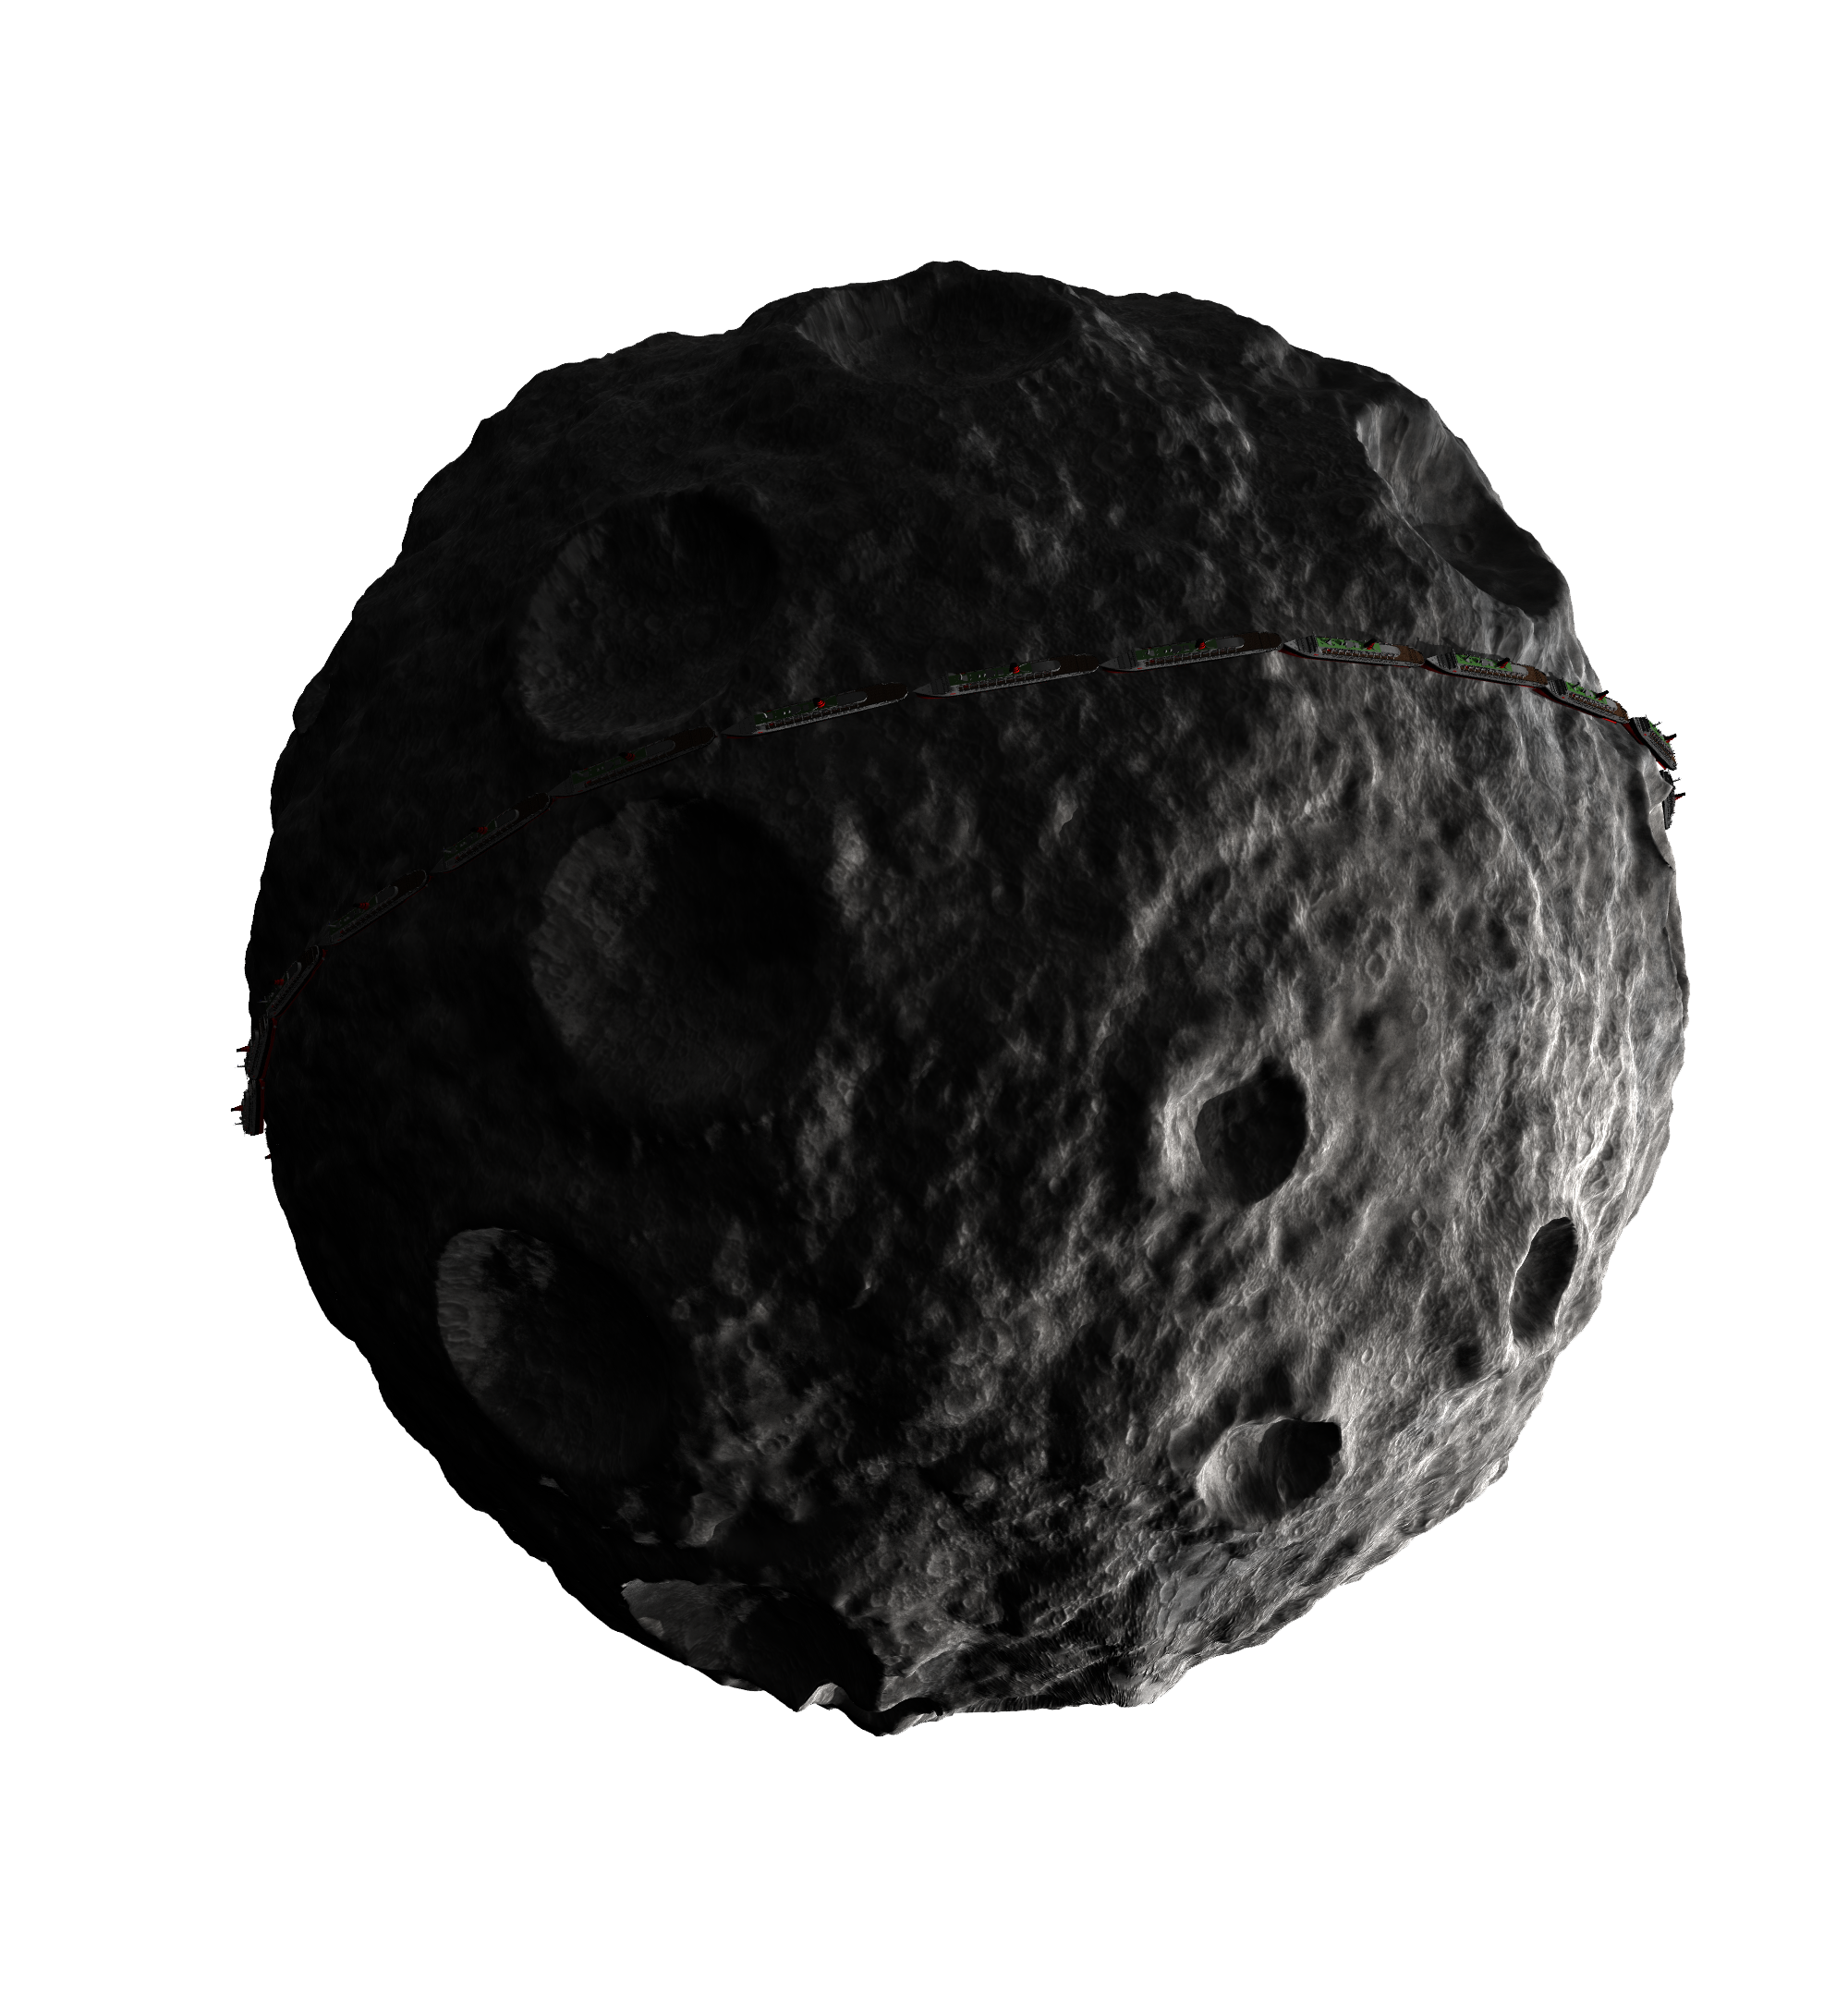 Asteroid clipart transparent background. Png images free download